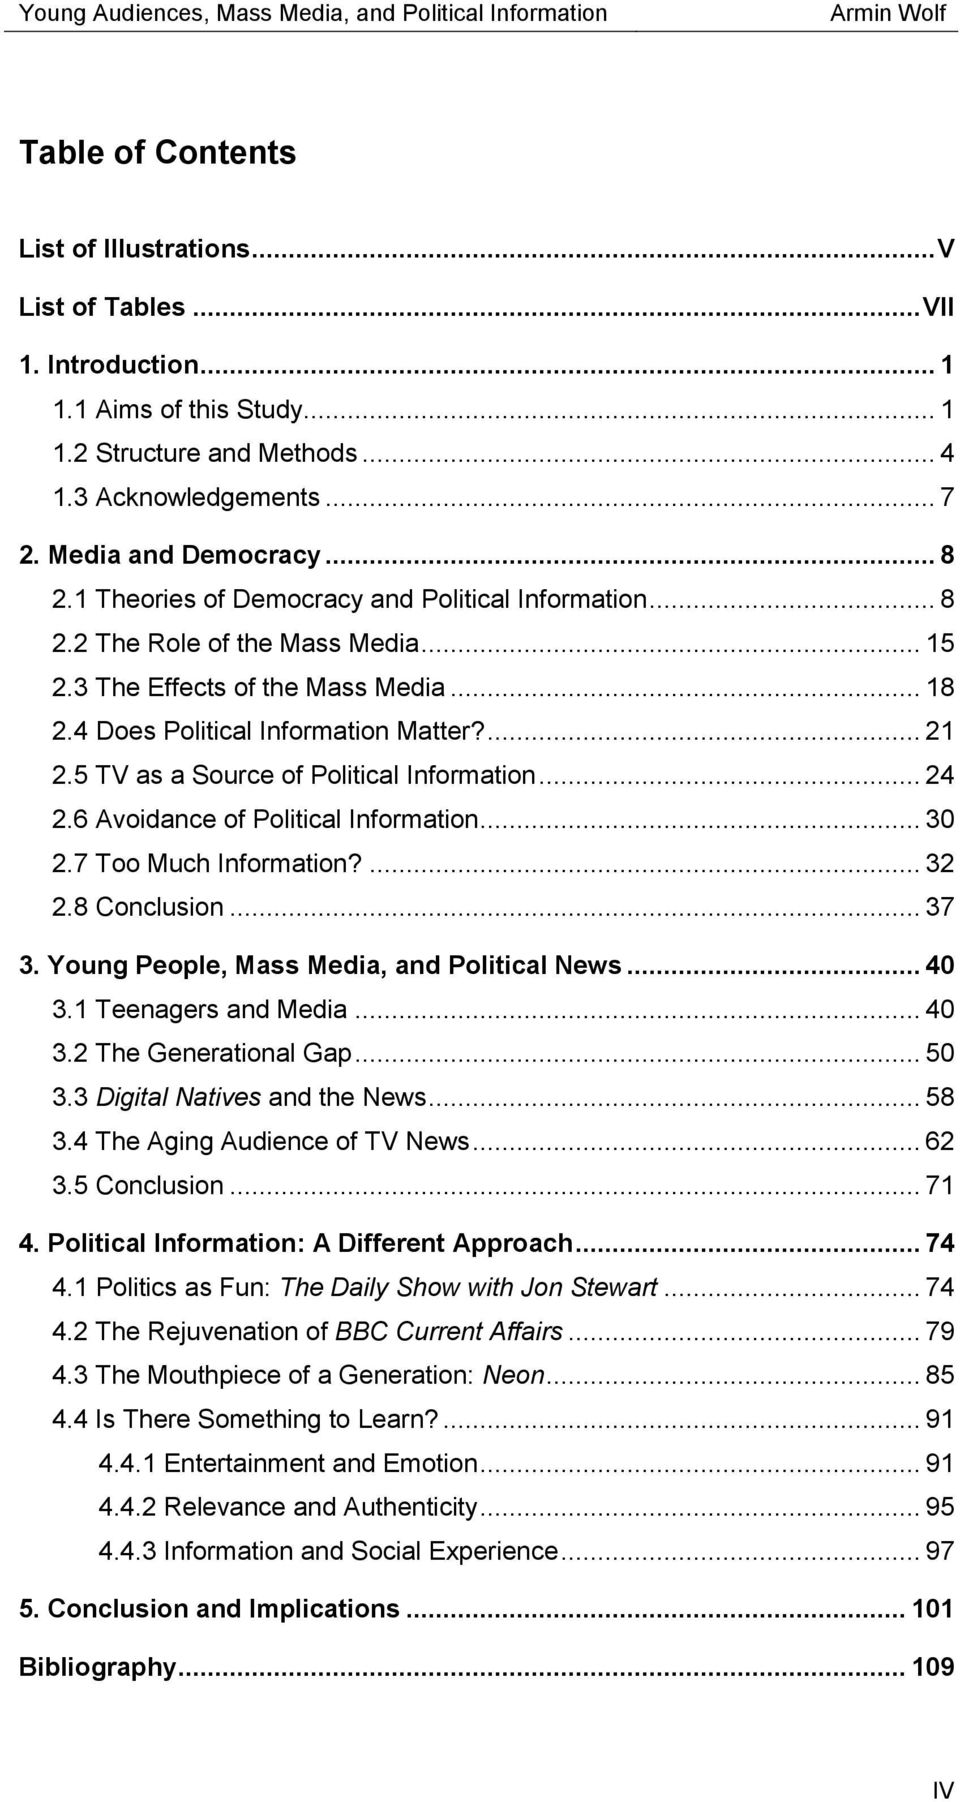 5 TV as a Source of Political Information... 24 2.6 Avoidance of Political Information... 30 2.7 Too Much Information?... 32 2.8 Conclusion... 37 3. Young People, Mass Media, and Political News... 40 3.